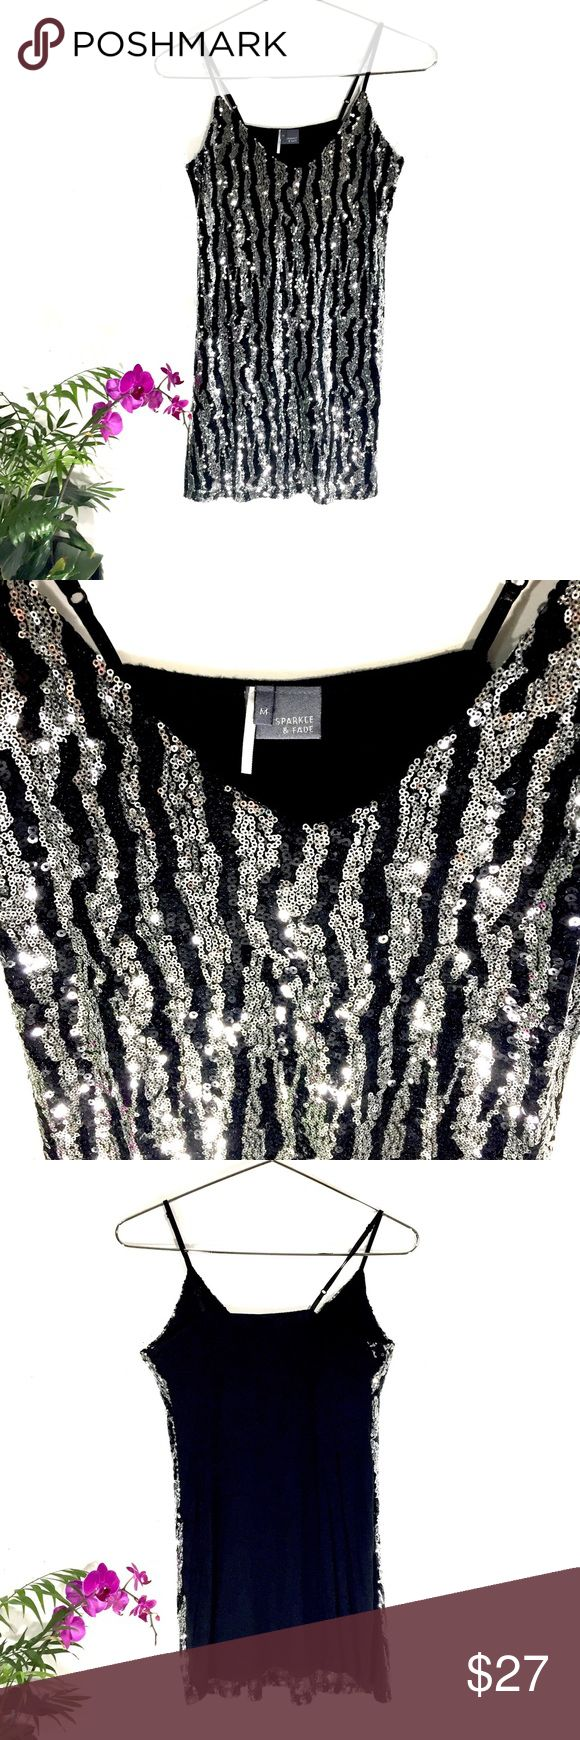 🌵Urban Outfitters sequin black & silver Tunic This sparkle and fade really sparkles!  Size Medium (wore it once to a Spurs Game).  EUC Urban Outfitters Tops Tunics